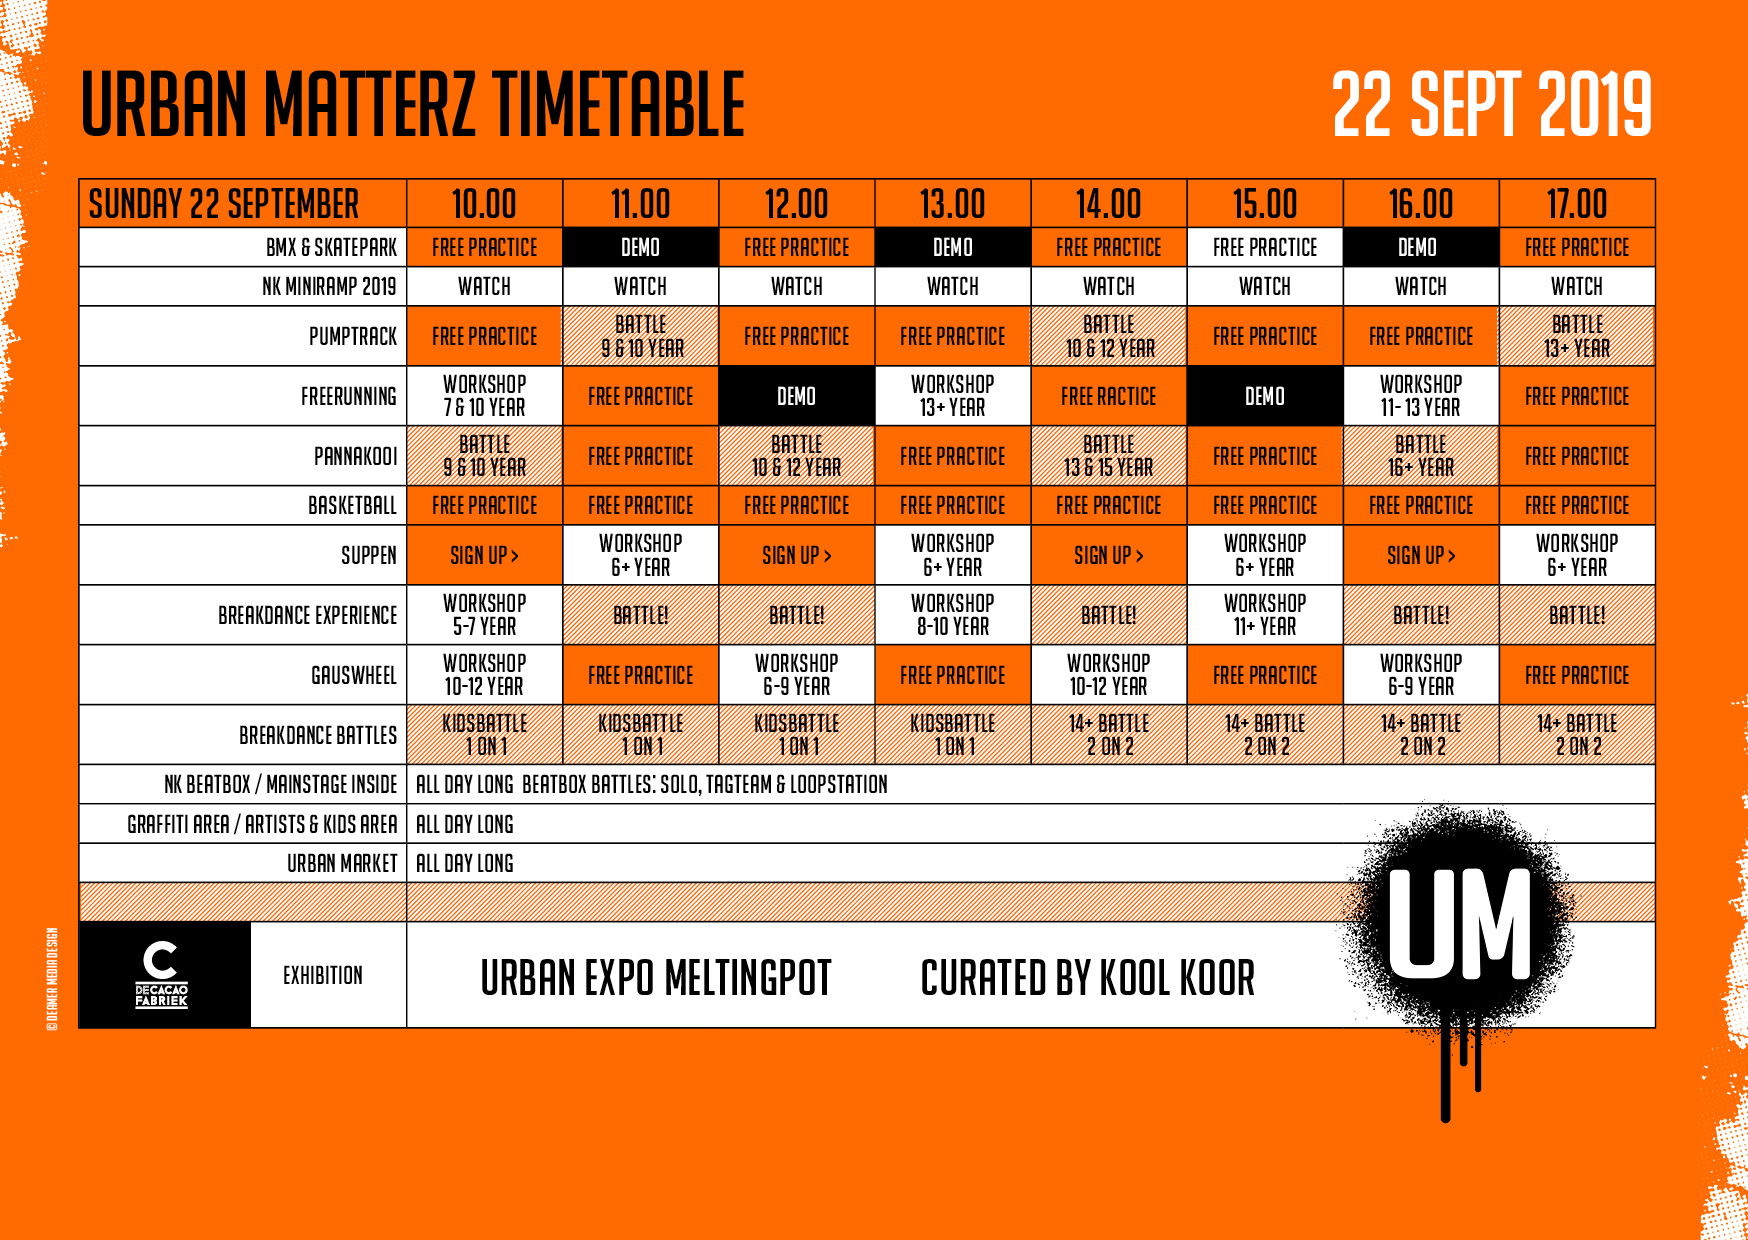 urbanmatterz timetable zondag 22 september